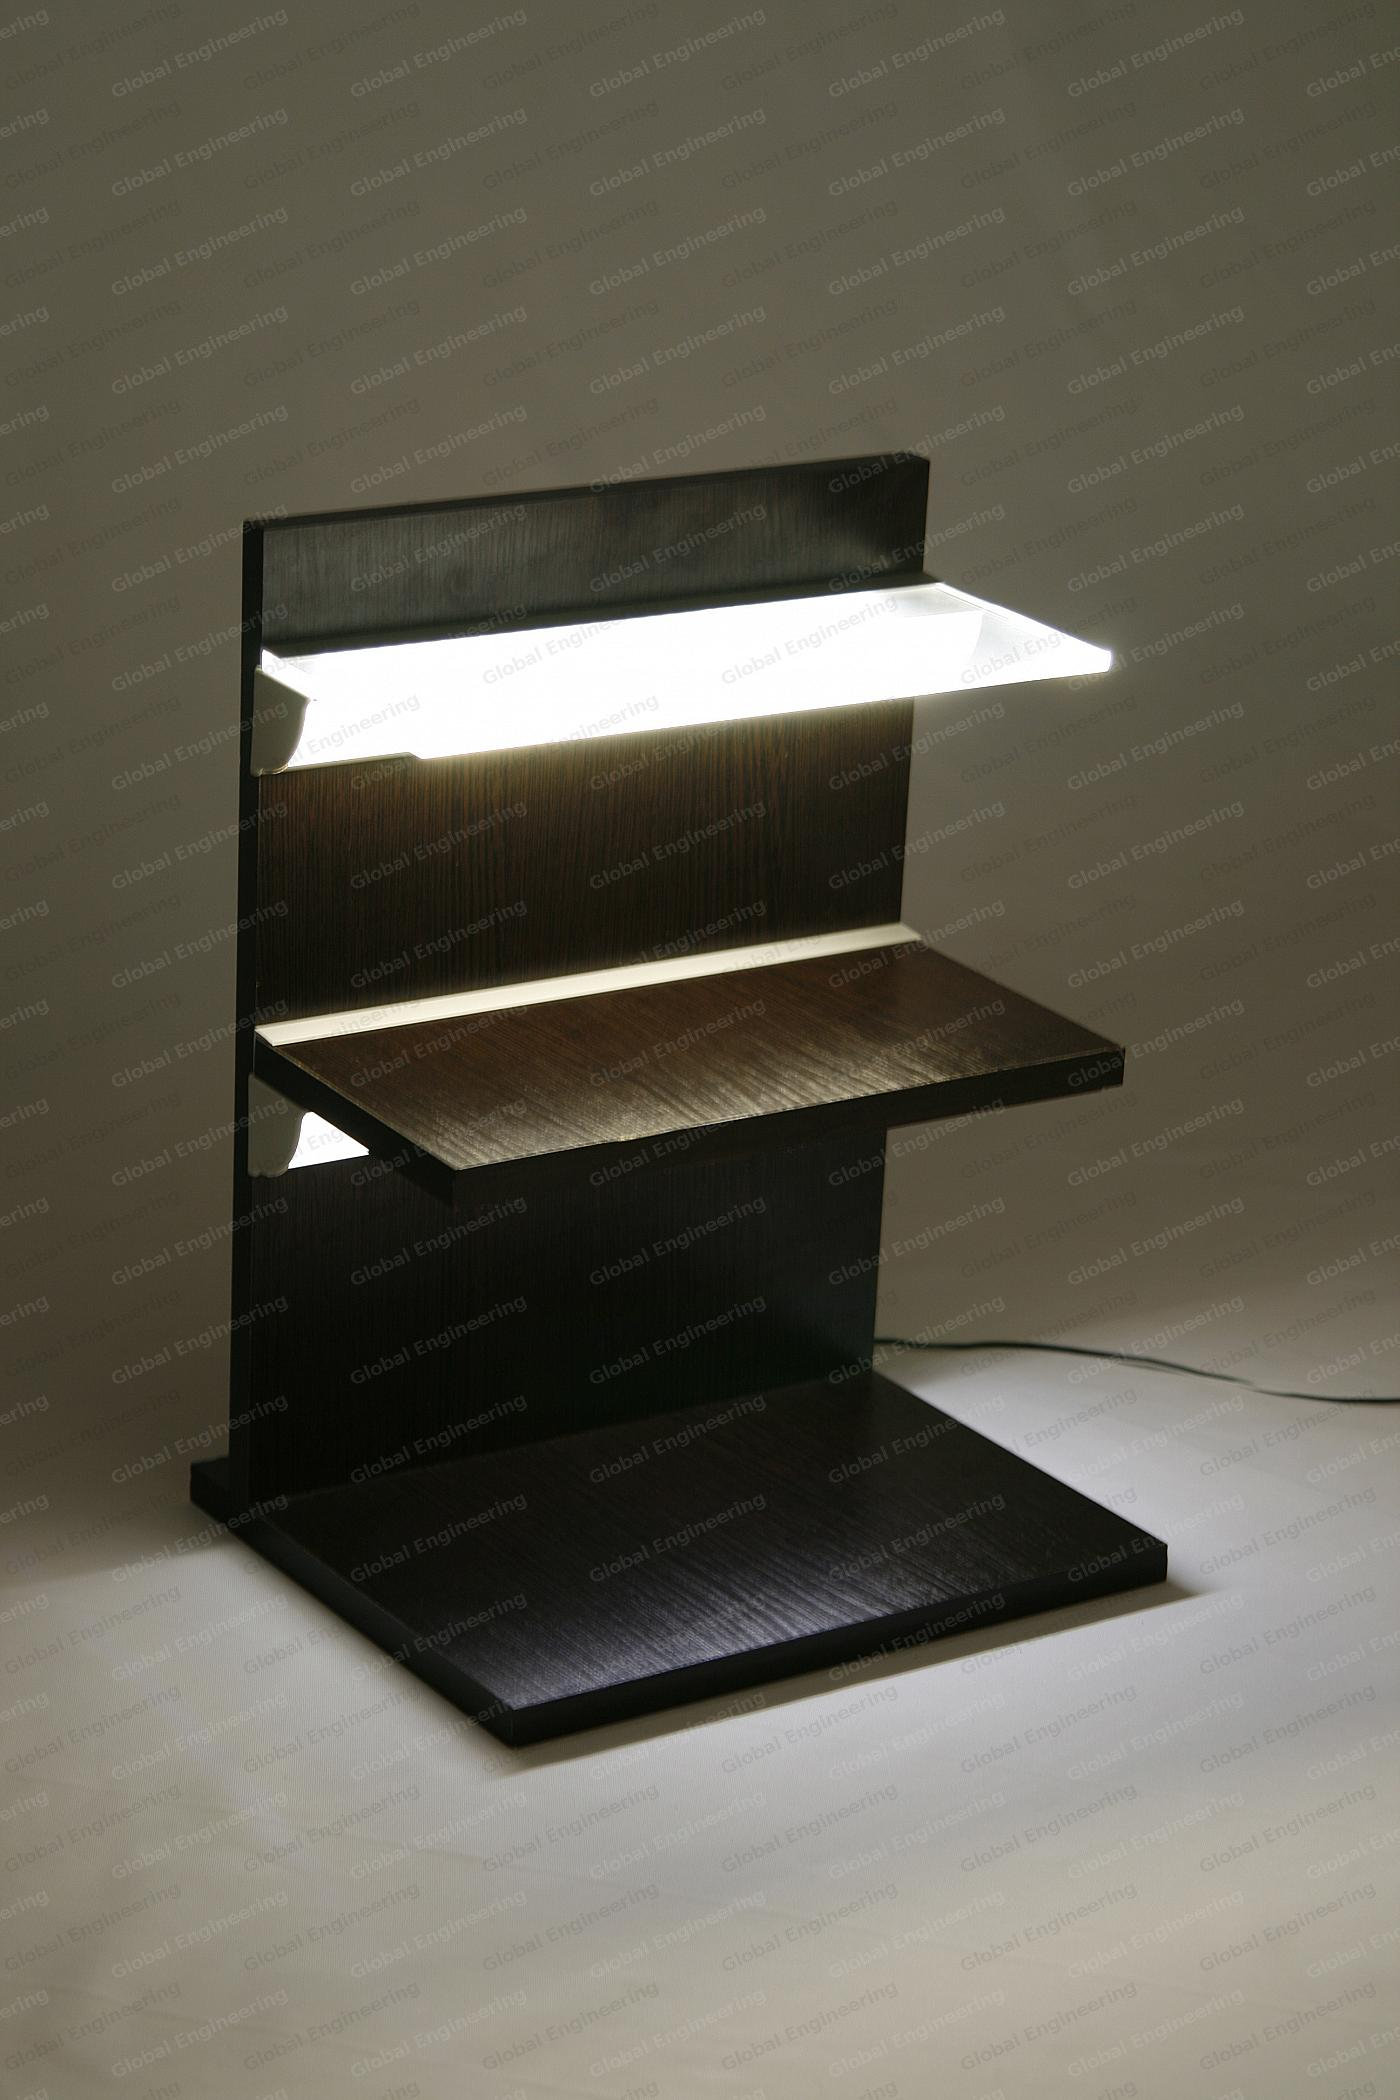 ArmLED - open-ended shelves with Illumination